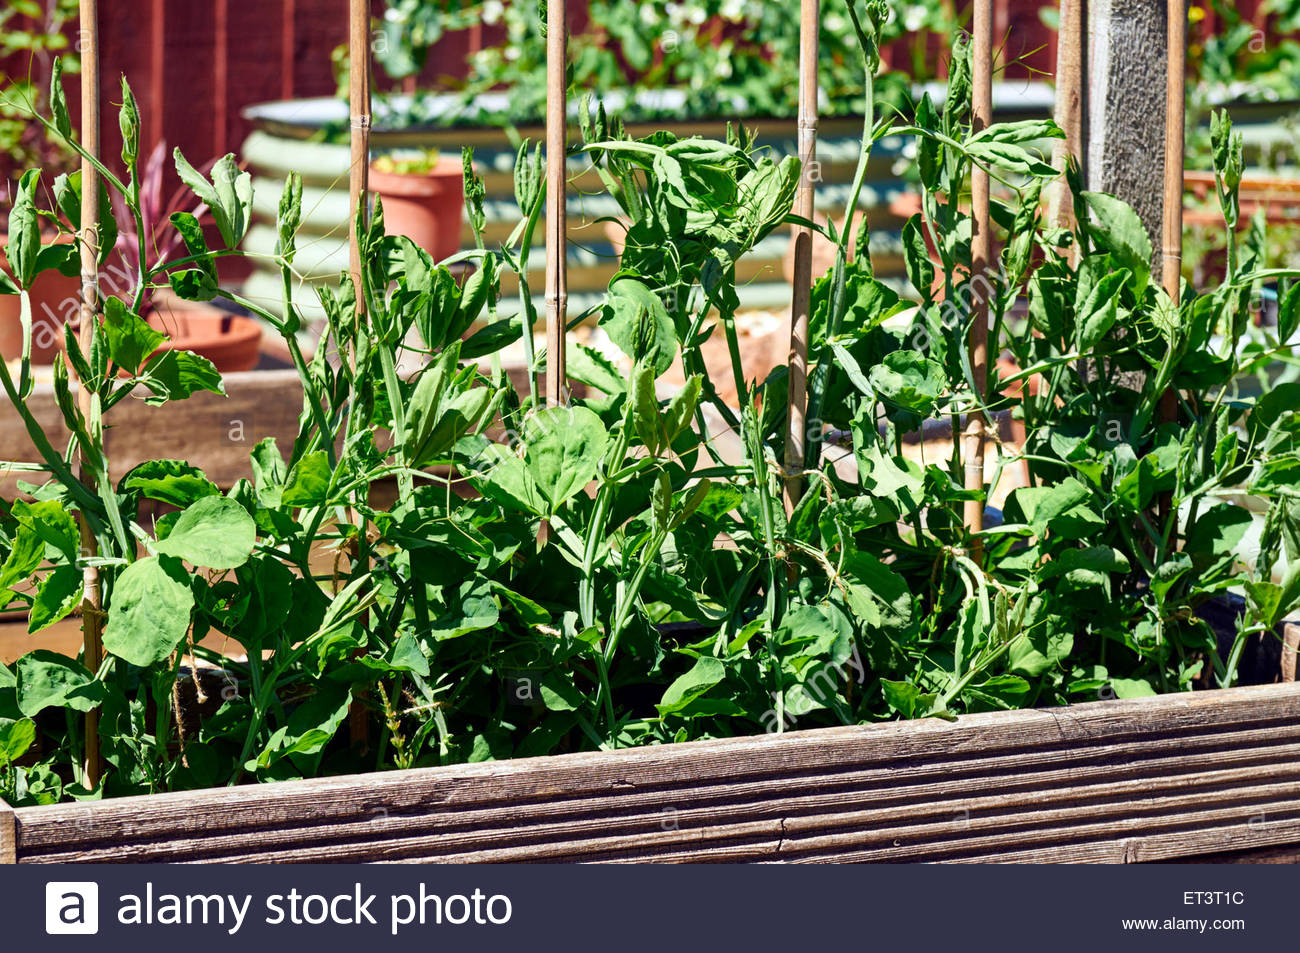 Pea Sticks Imágenes De Stock & Pea Sticks Fotos De Stock - Alamy